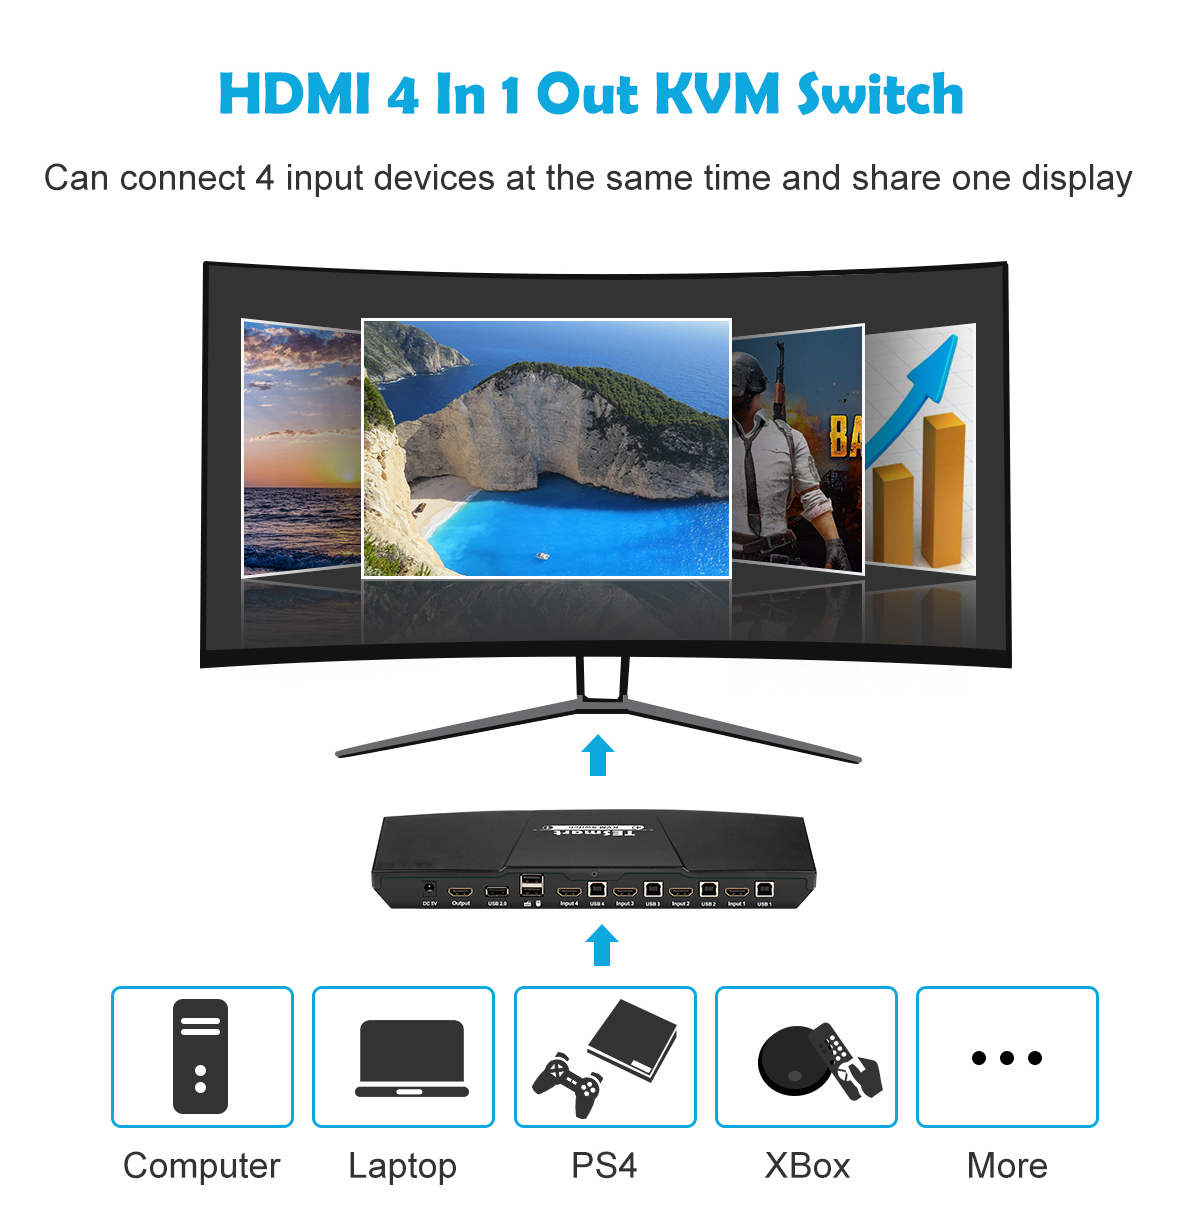 TESmart KVM Switch HDMI 4K 4 Input 1 Output 3840x2160@30Hz with 2 Pcs  5ft/1 5m KVM Cables Supports USB 2 0 Device Control up to 4